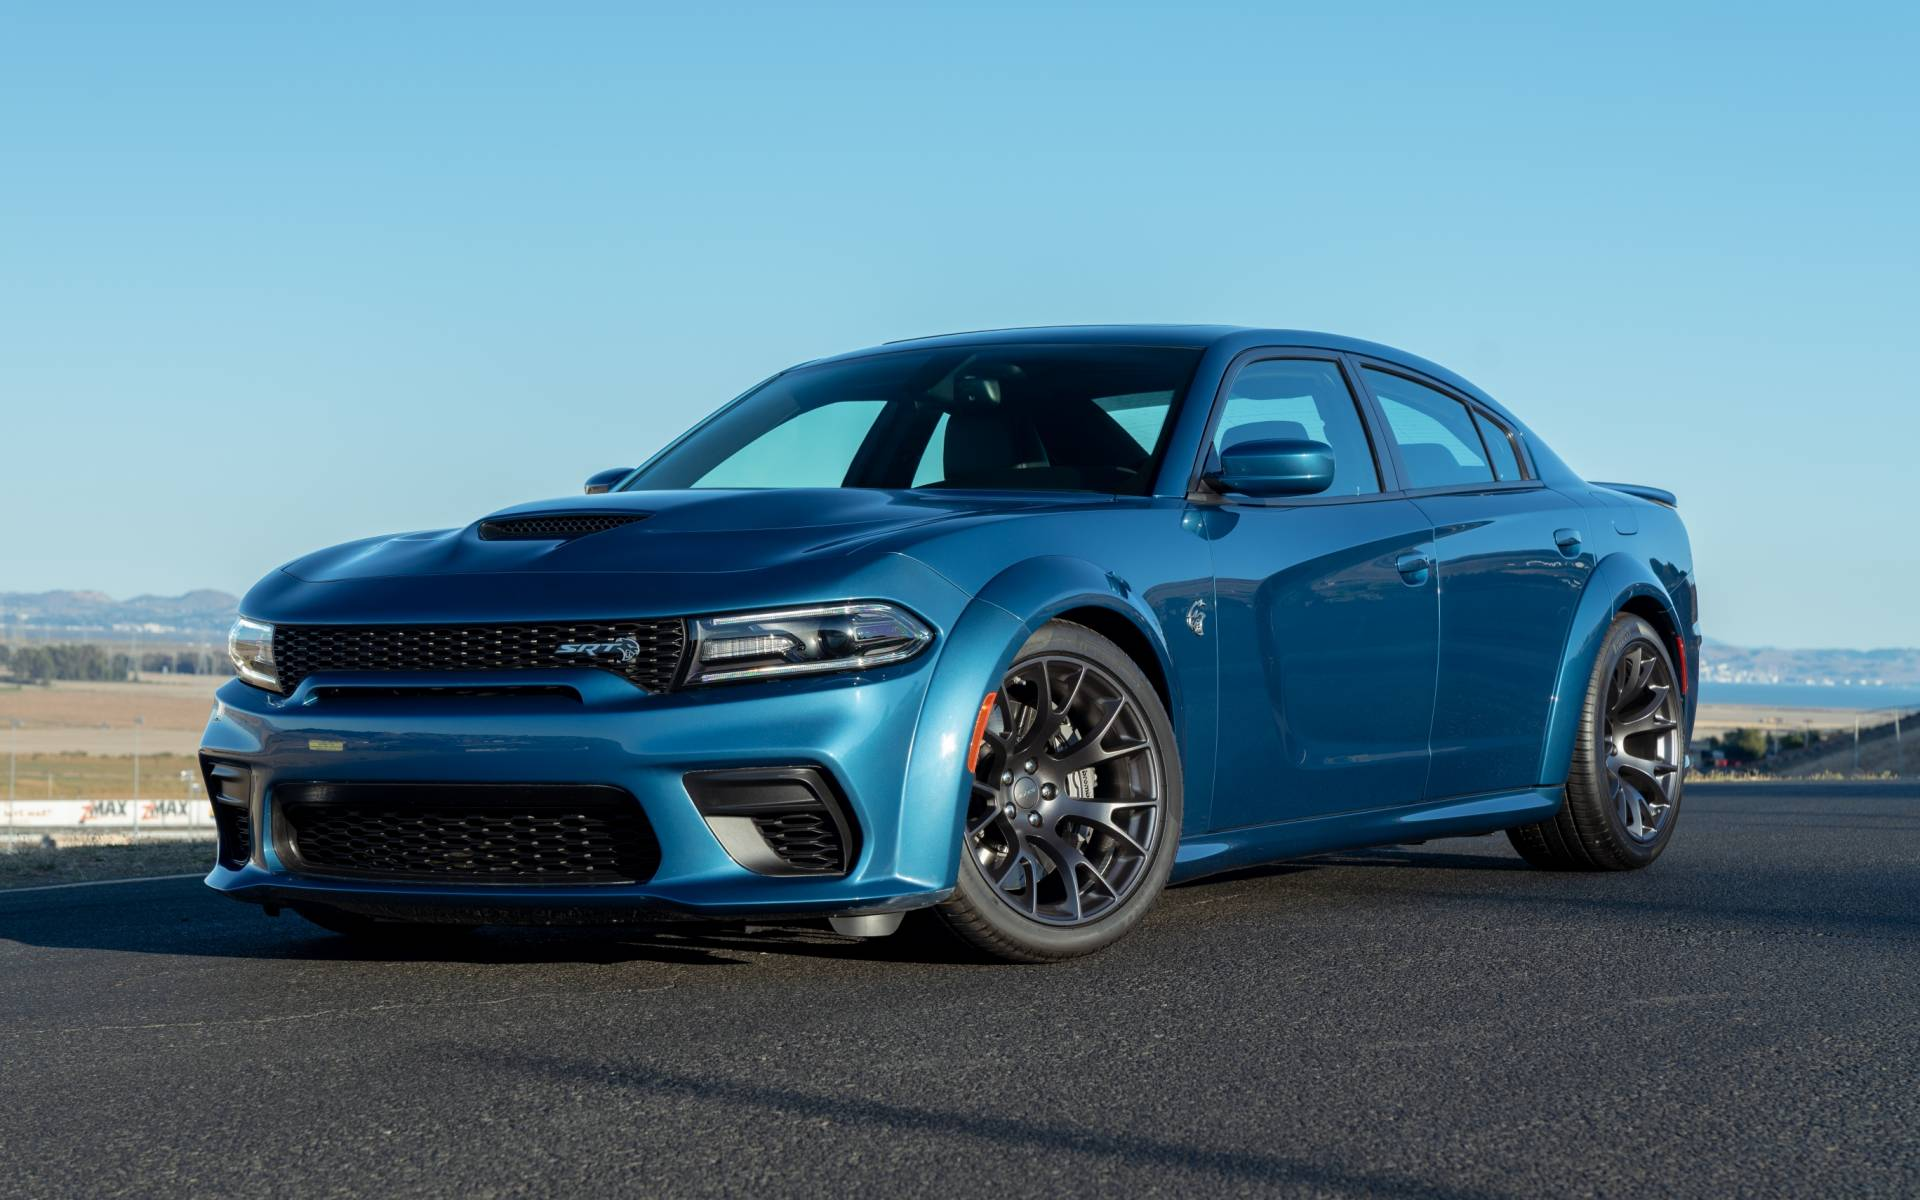 2020 Dodge Charger Srt Hellcat Widebody Specifications The Car Guide